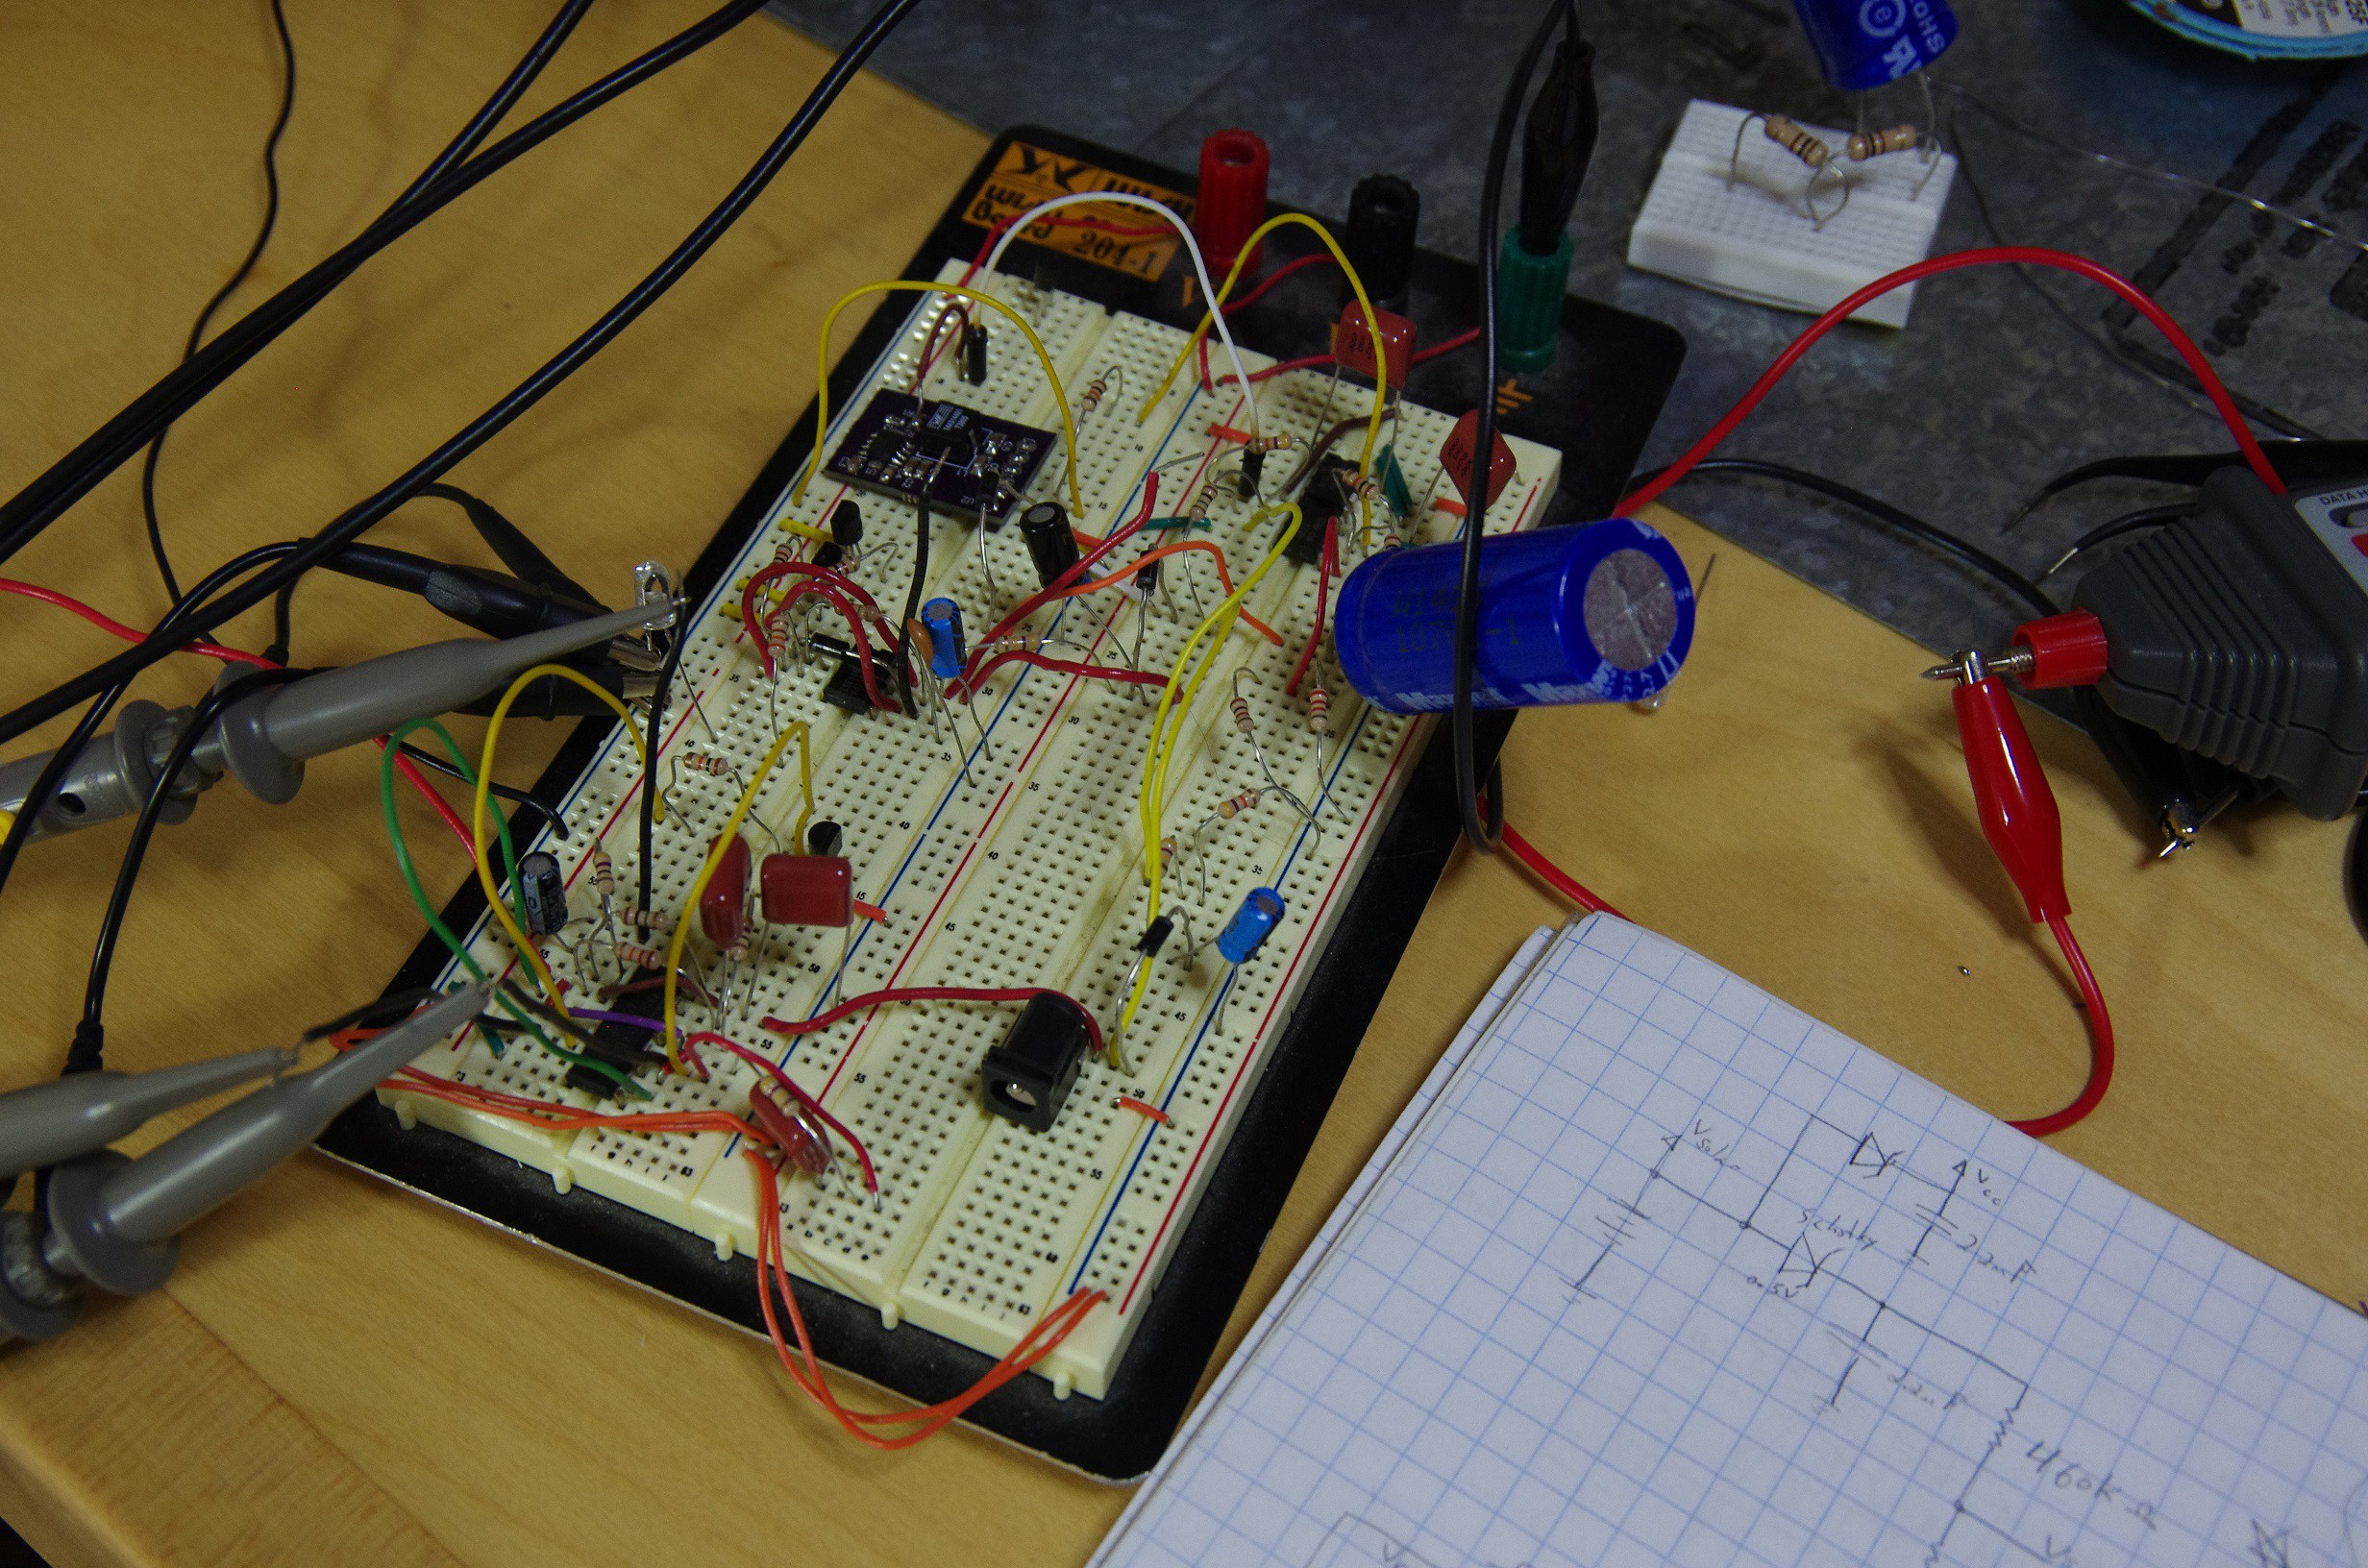 Timing Is The Answer Details 555 Timer Monostable Circuit Electrical Engineering Electronics My First Inclination Was To Replace Mcu With Good Ole Trusty These Ics Have Been Around Since Dawn Of Semiconductor Mild